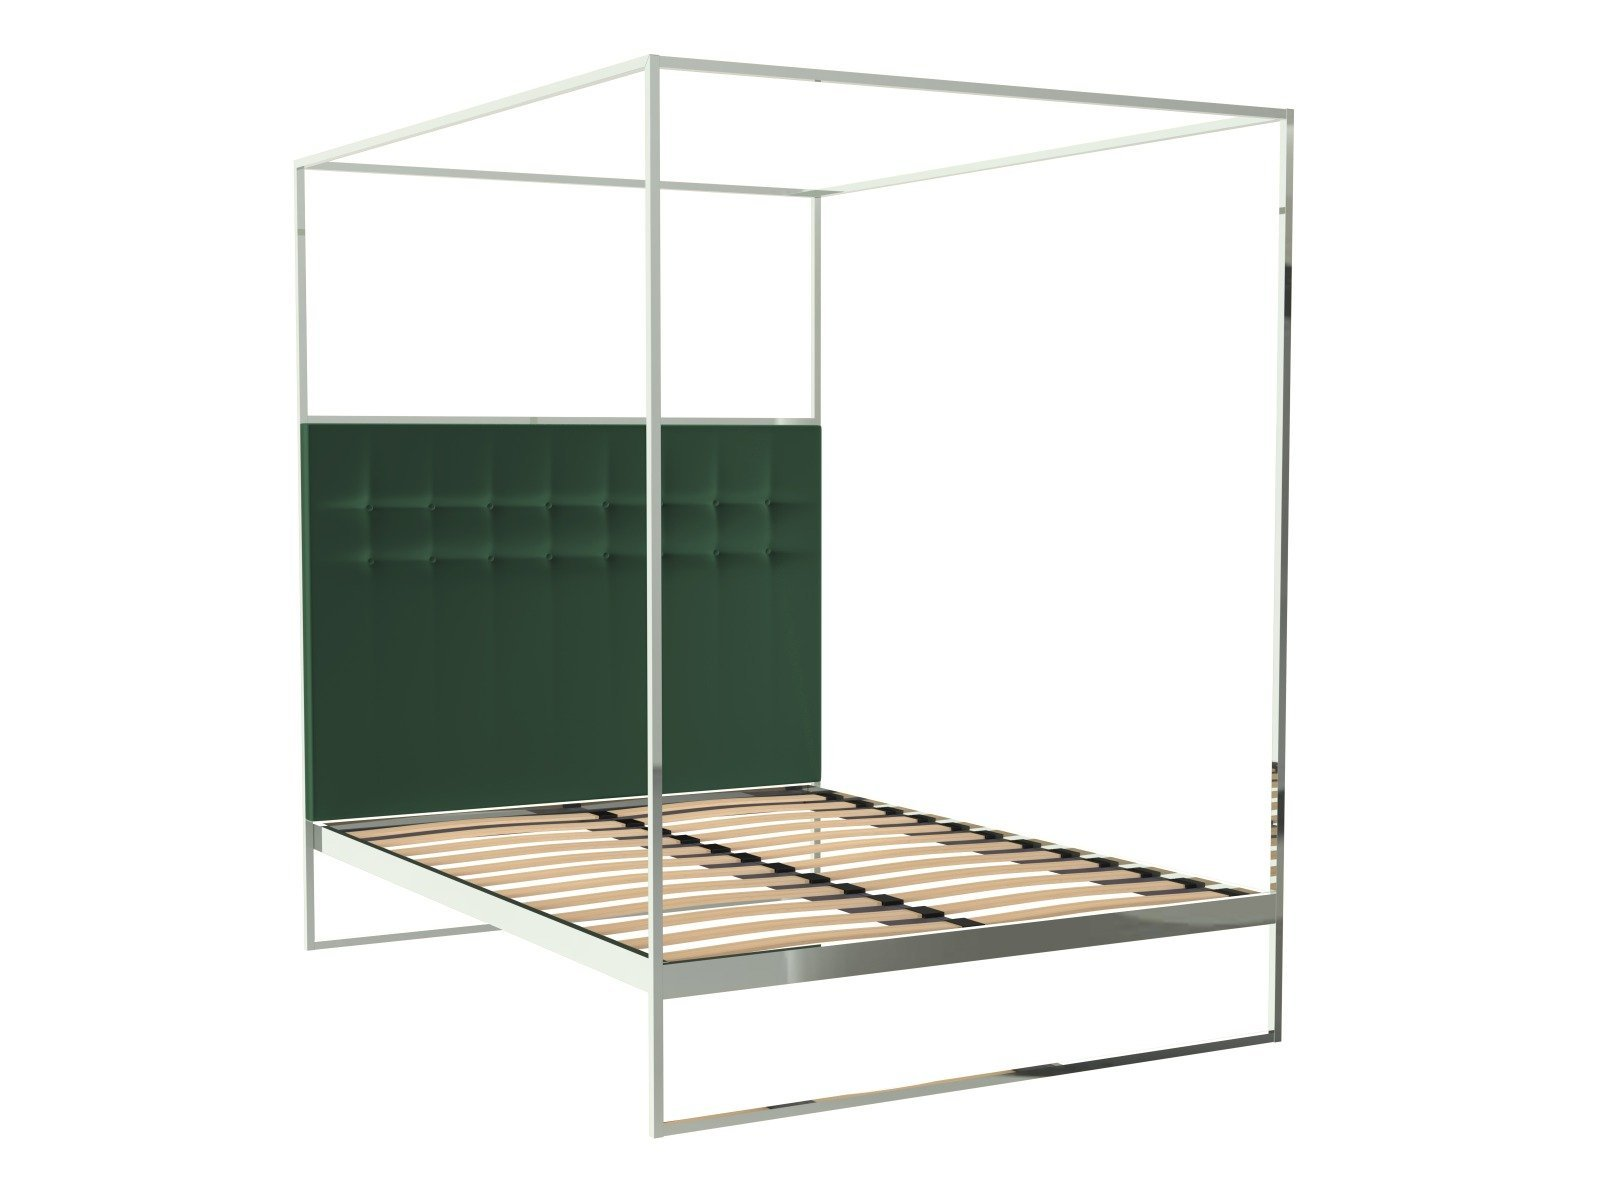 Bed frame with headboard and canopy frame (Double)